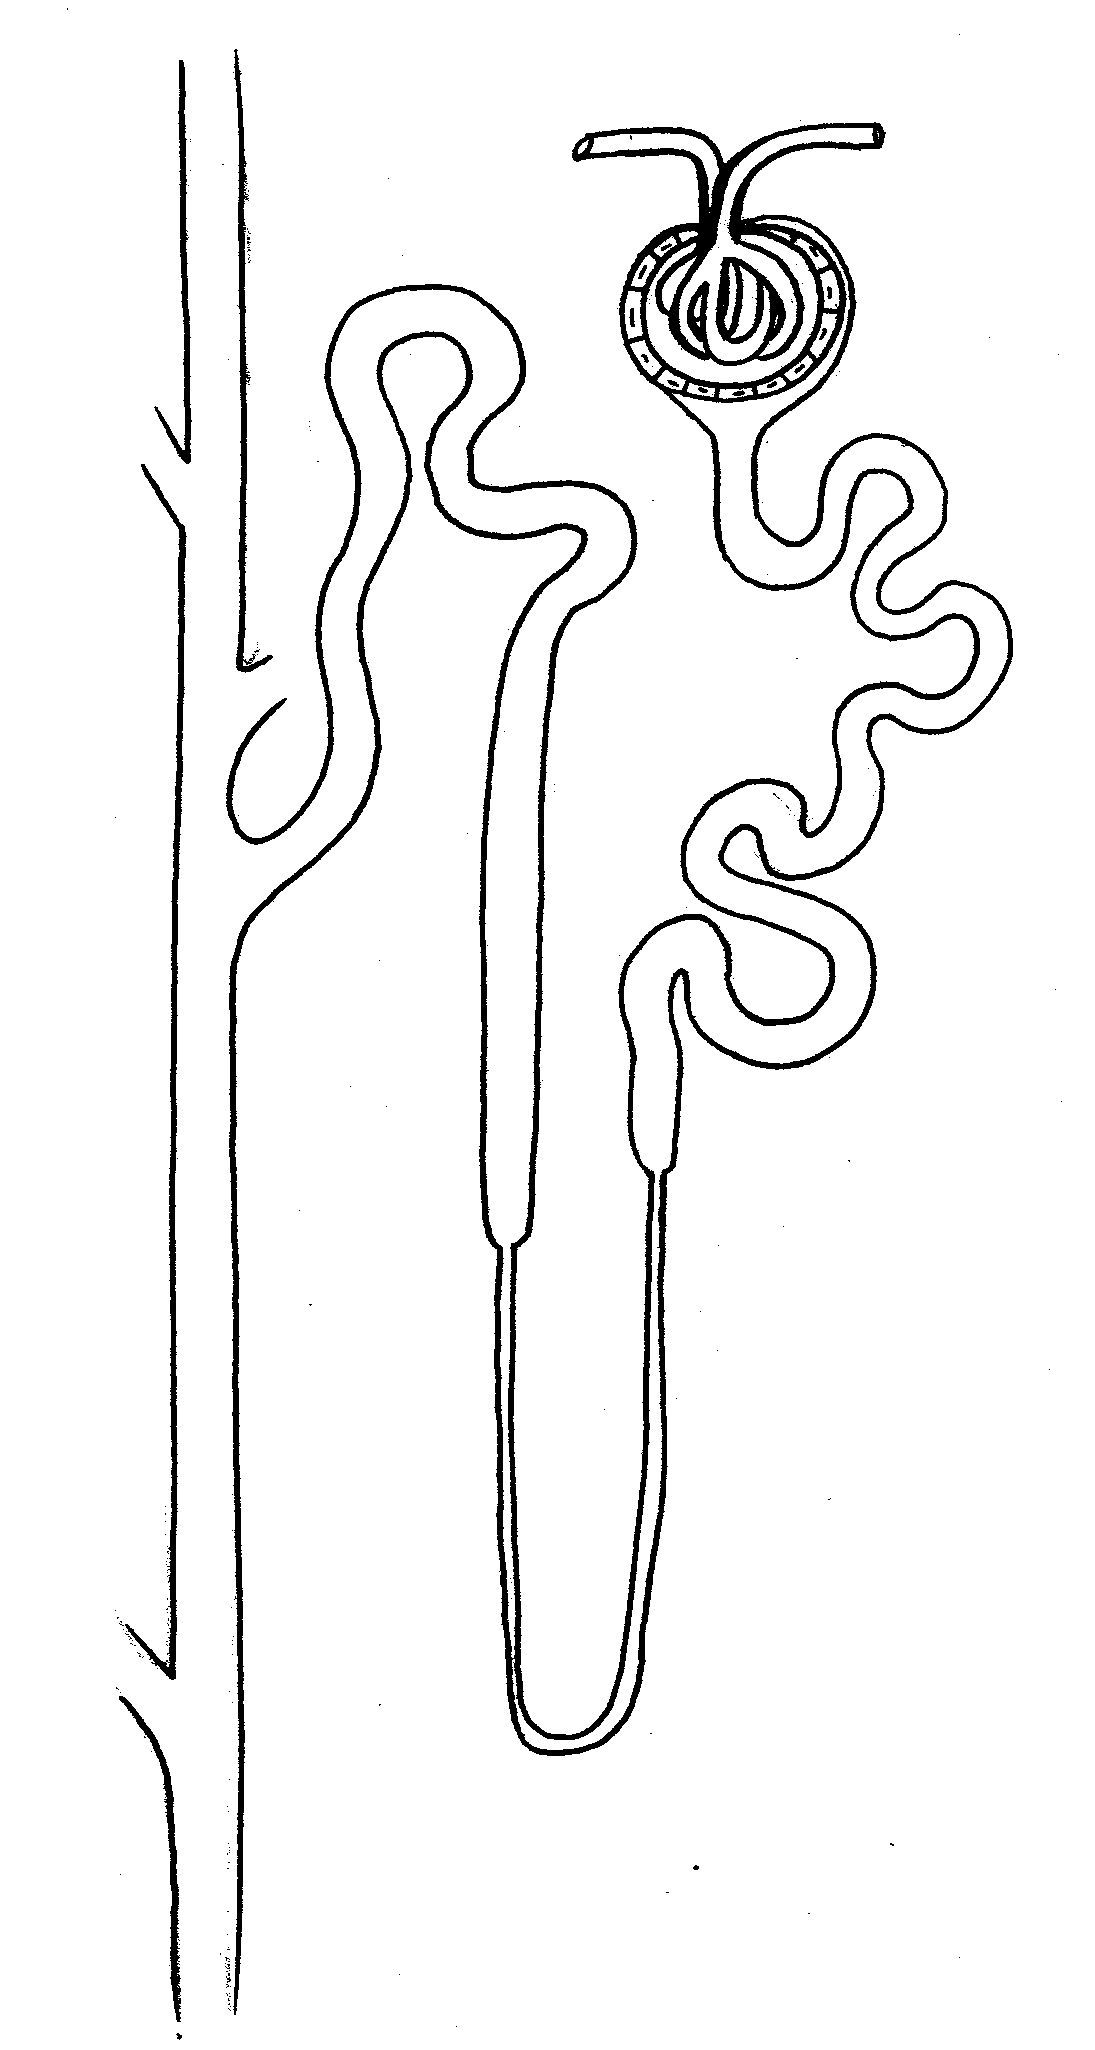 Kidney Nephron In